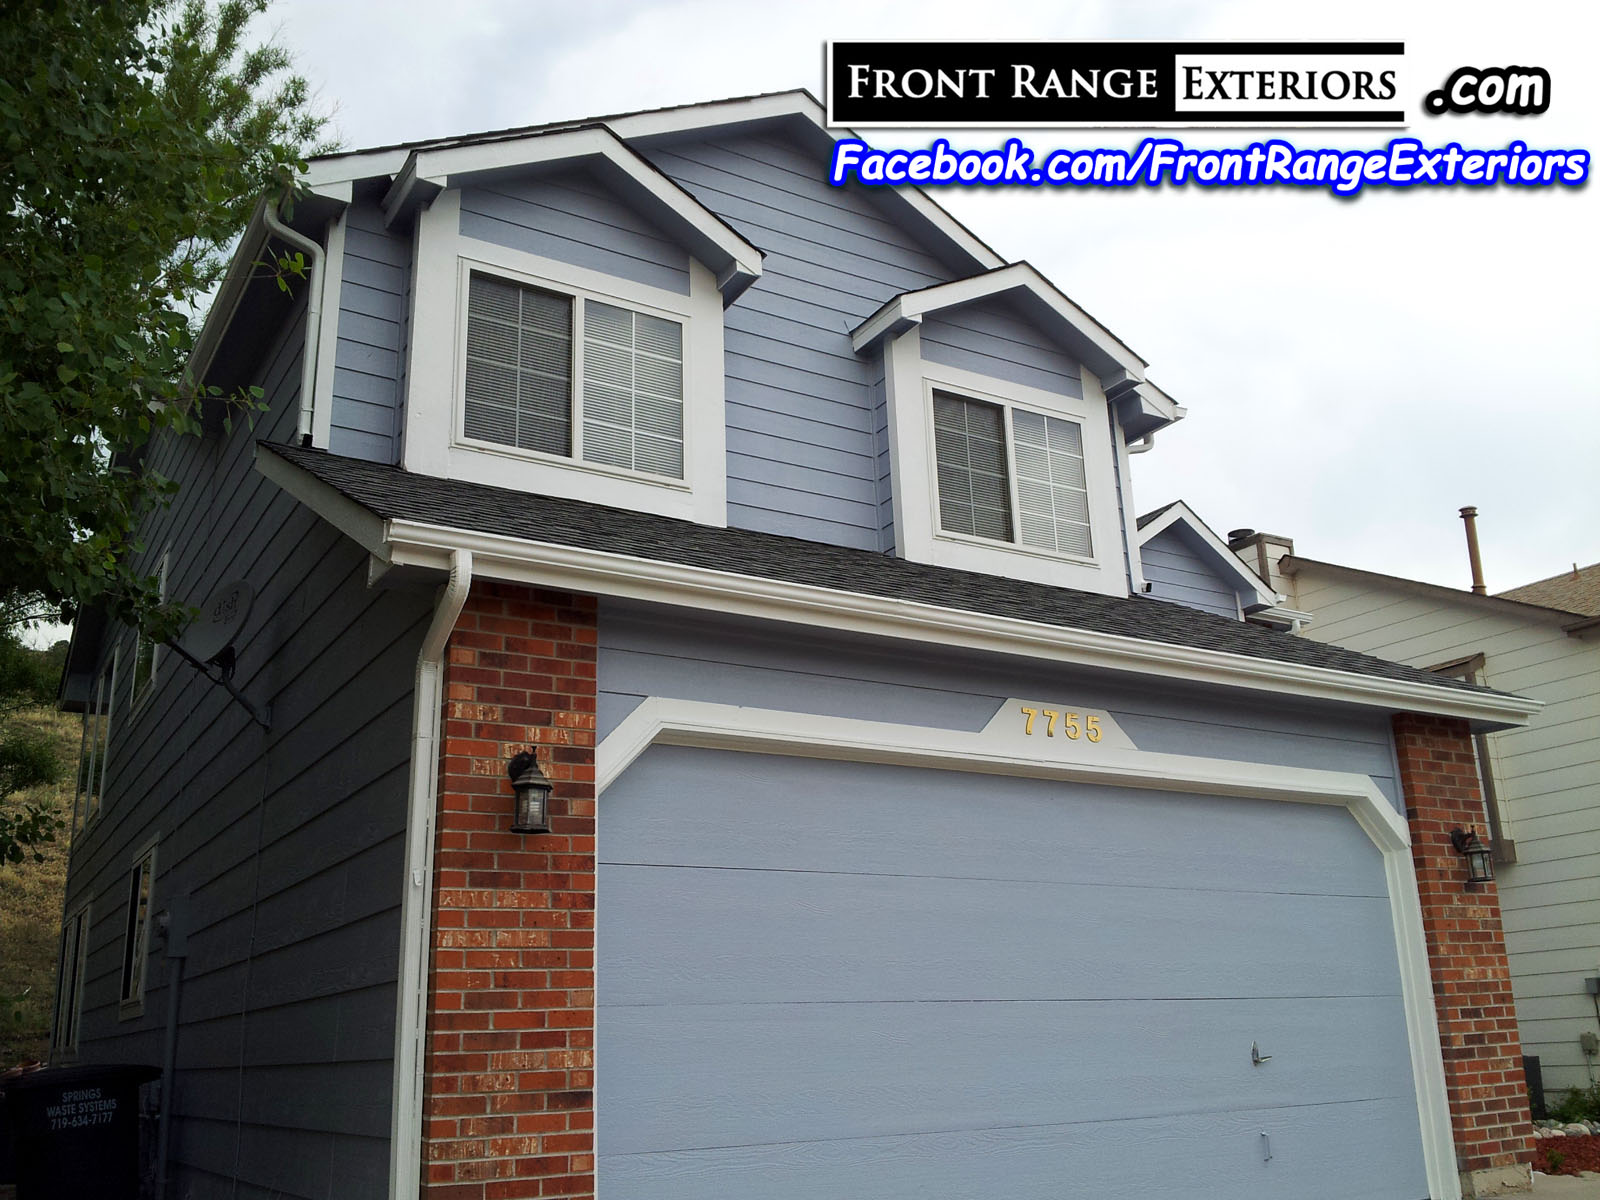 Colorado Springs Painting Contractors Front Range Exteriors Inc - Painting contractors